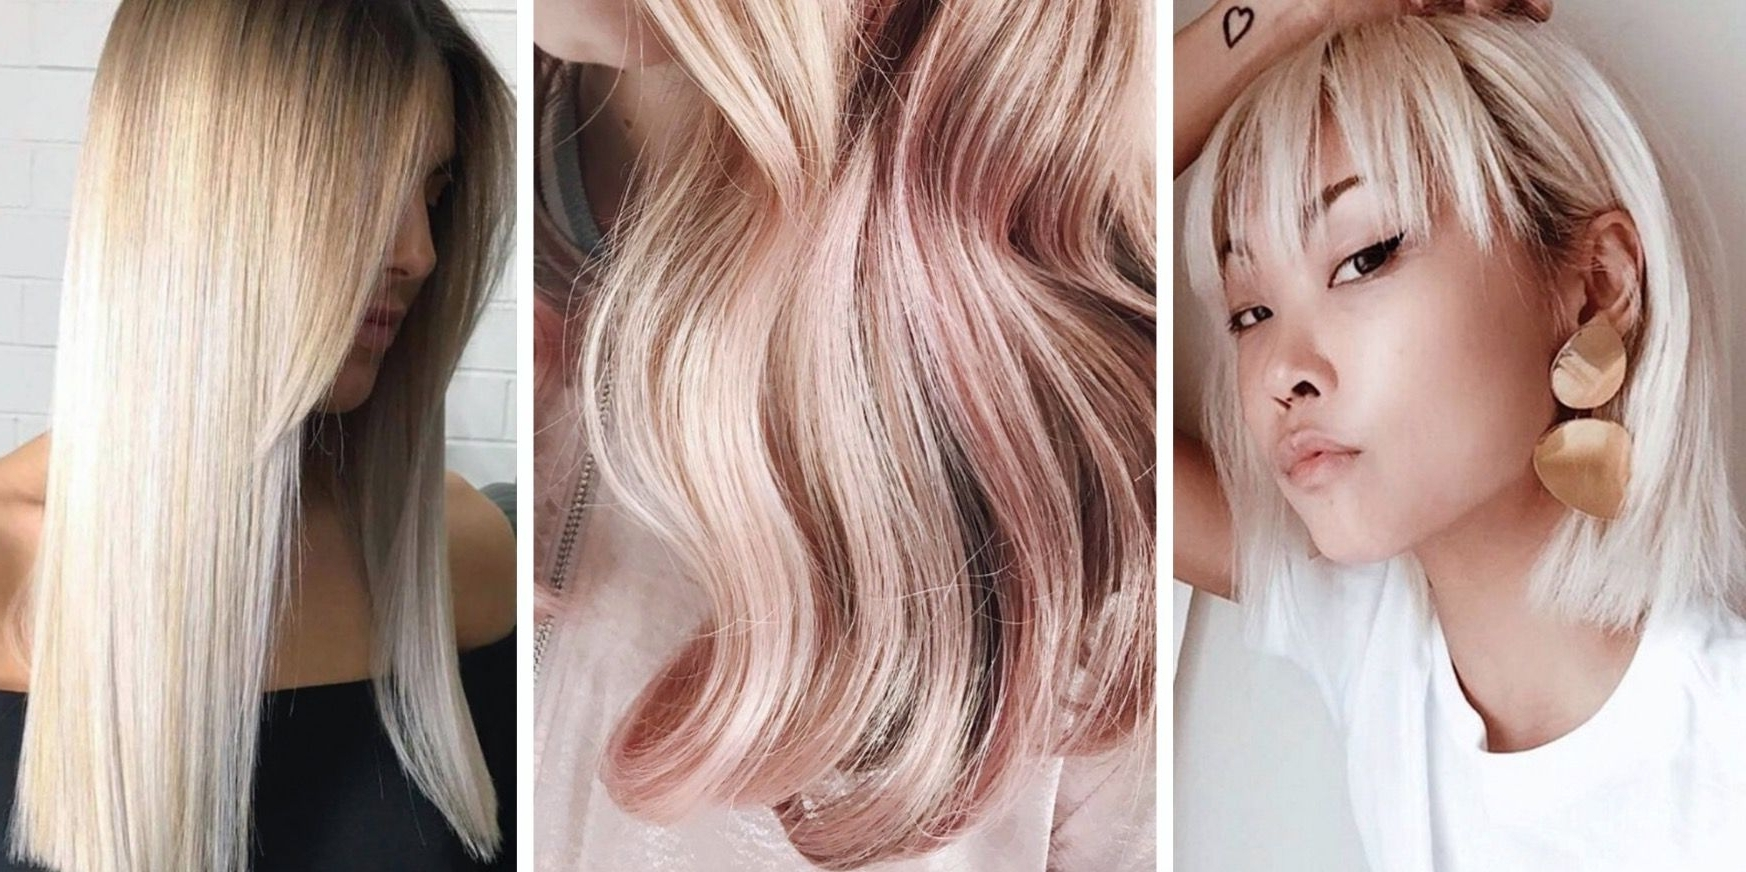 Most Up To Date Creamy Blonde Fade Hairstyles Regarding 17 Blonde Hair Trends That'll Convince You To Go Light This Summer (View 12 of 20)